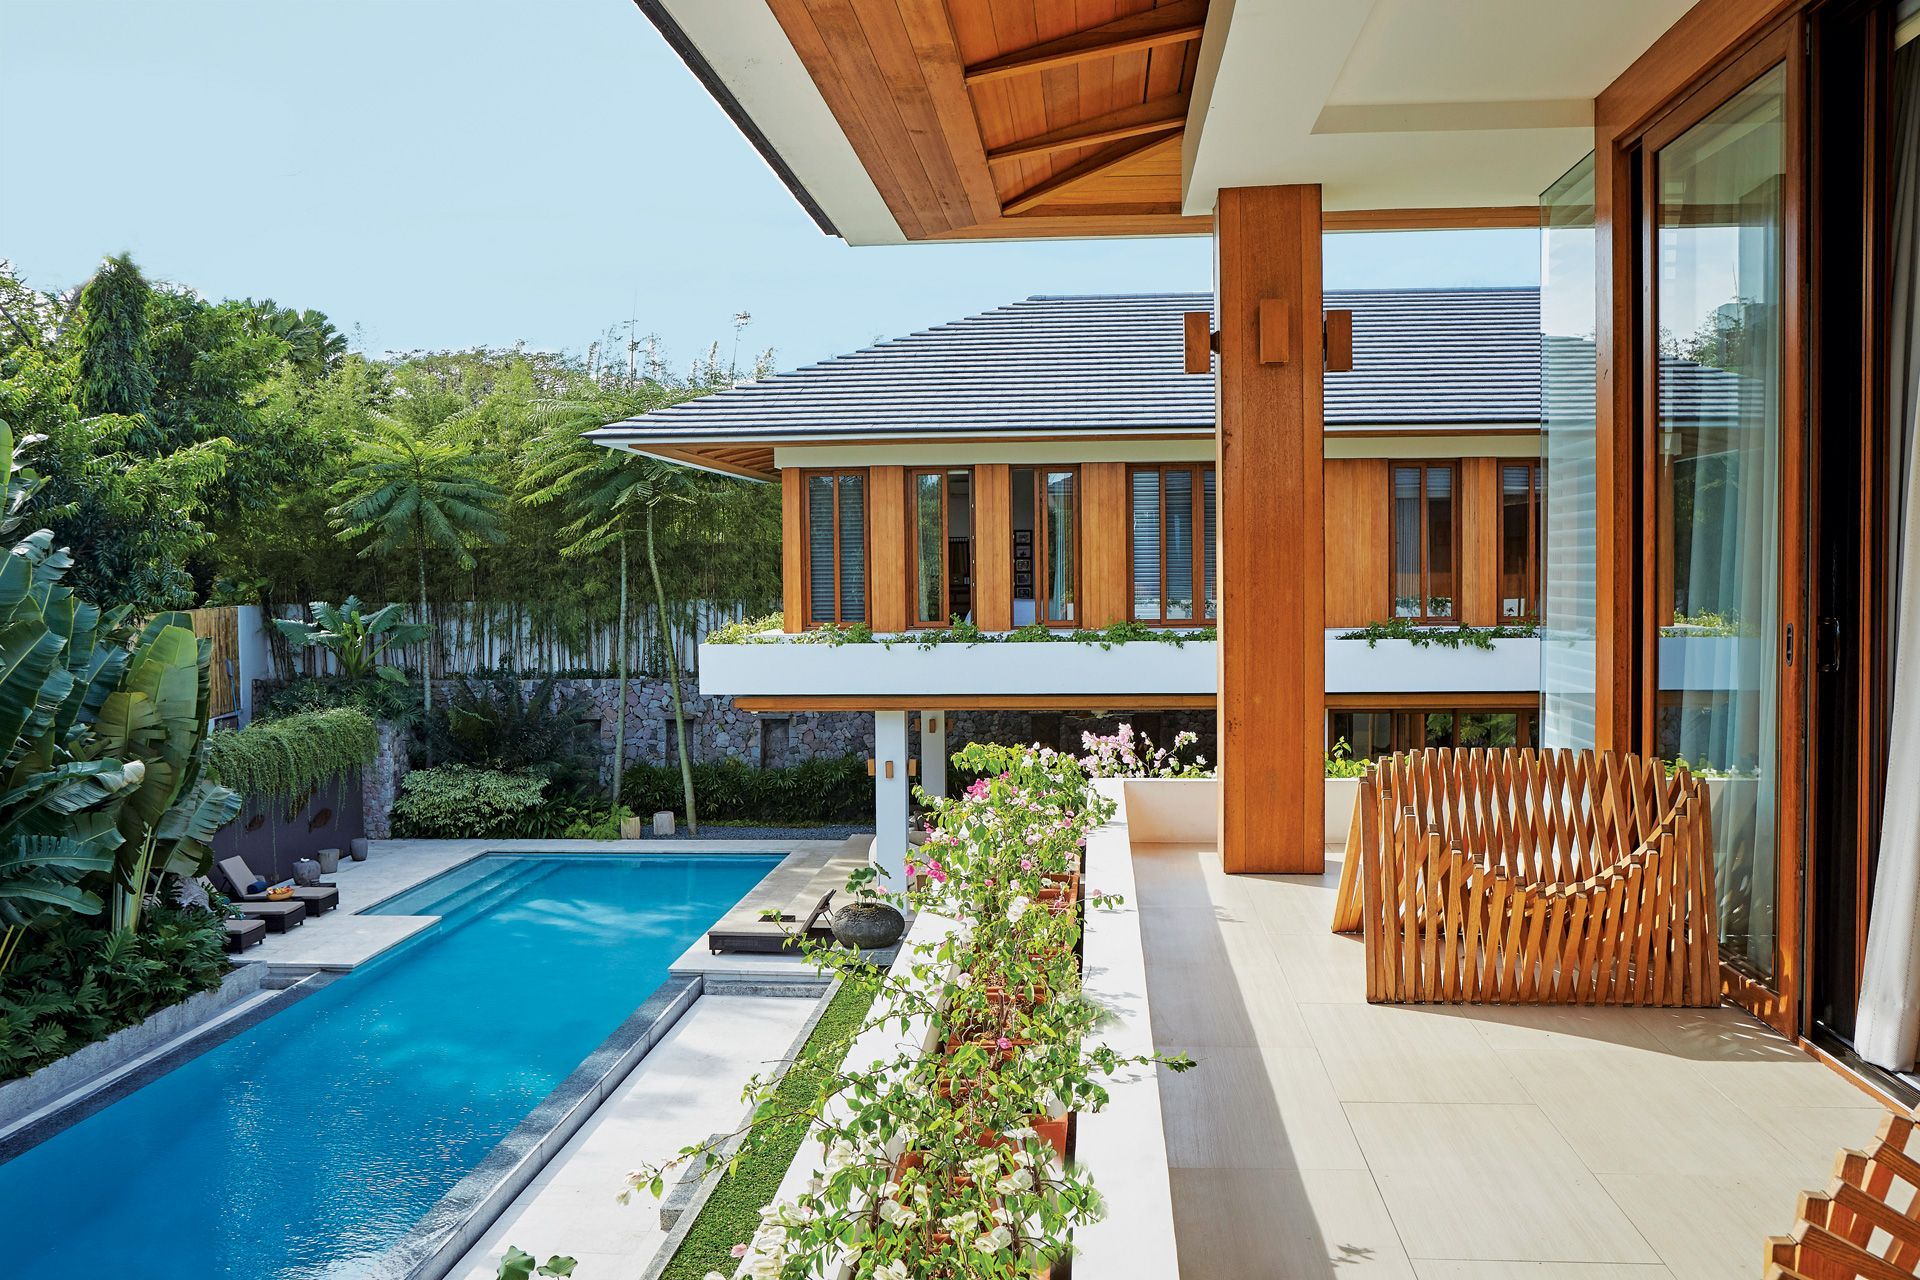 Home Tour: A Peaceful Refuge In The Suburbs